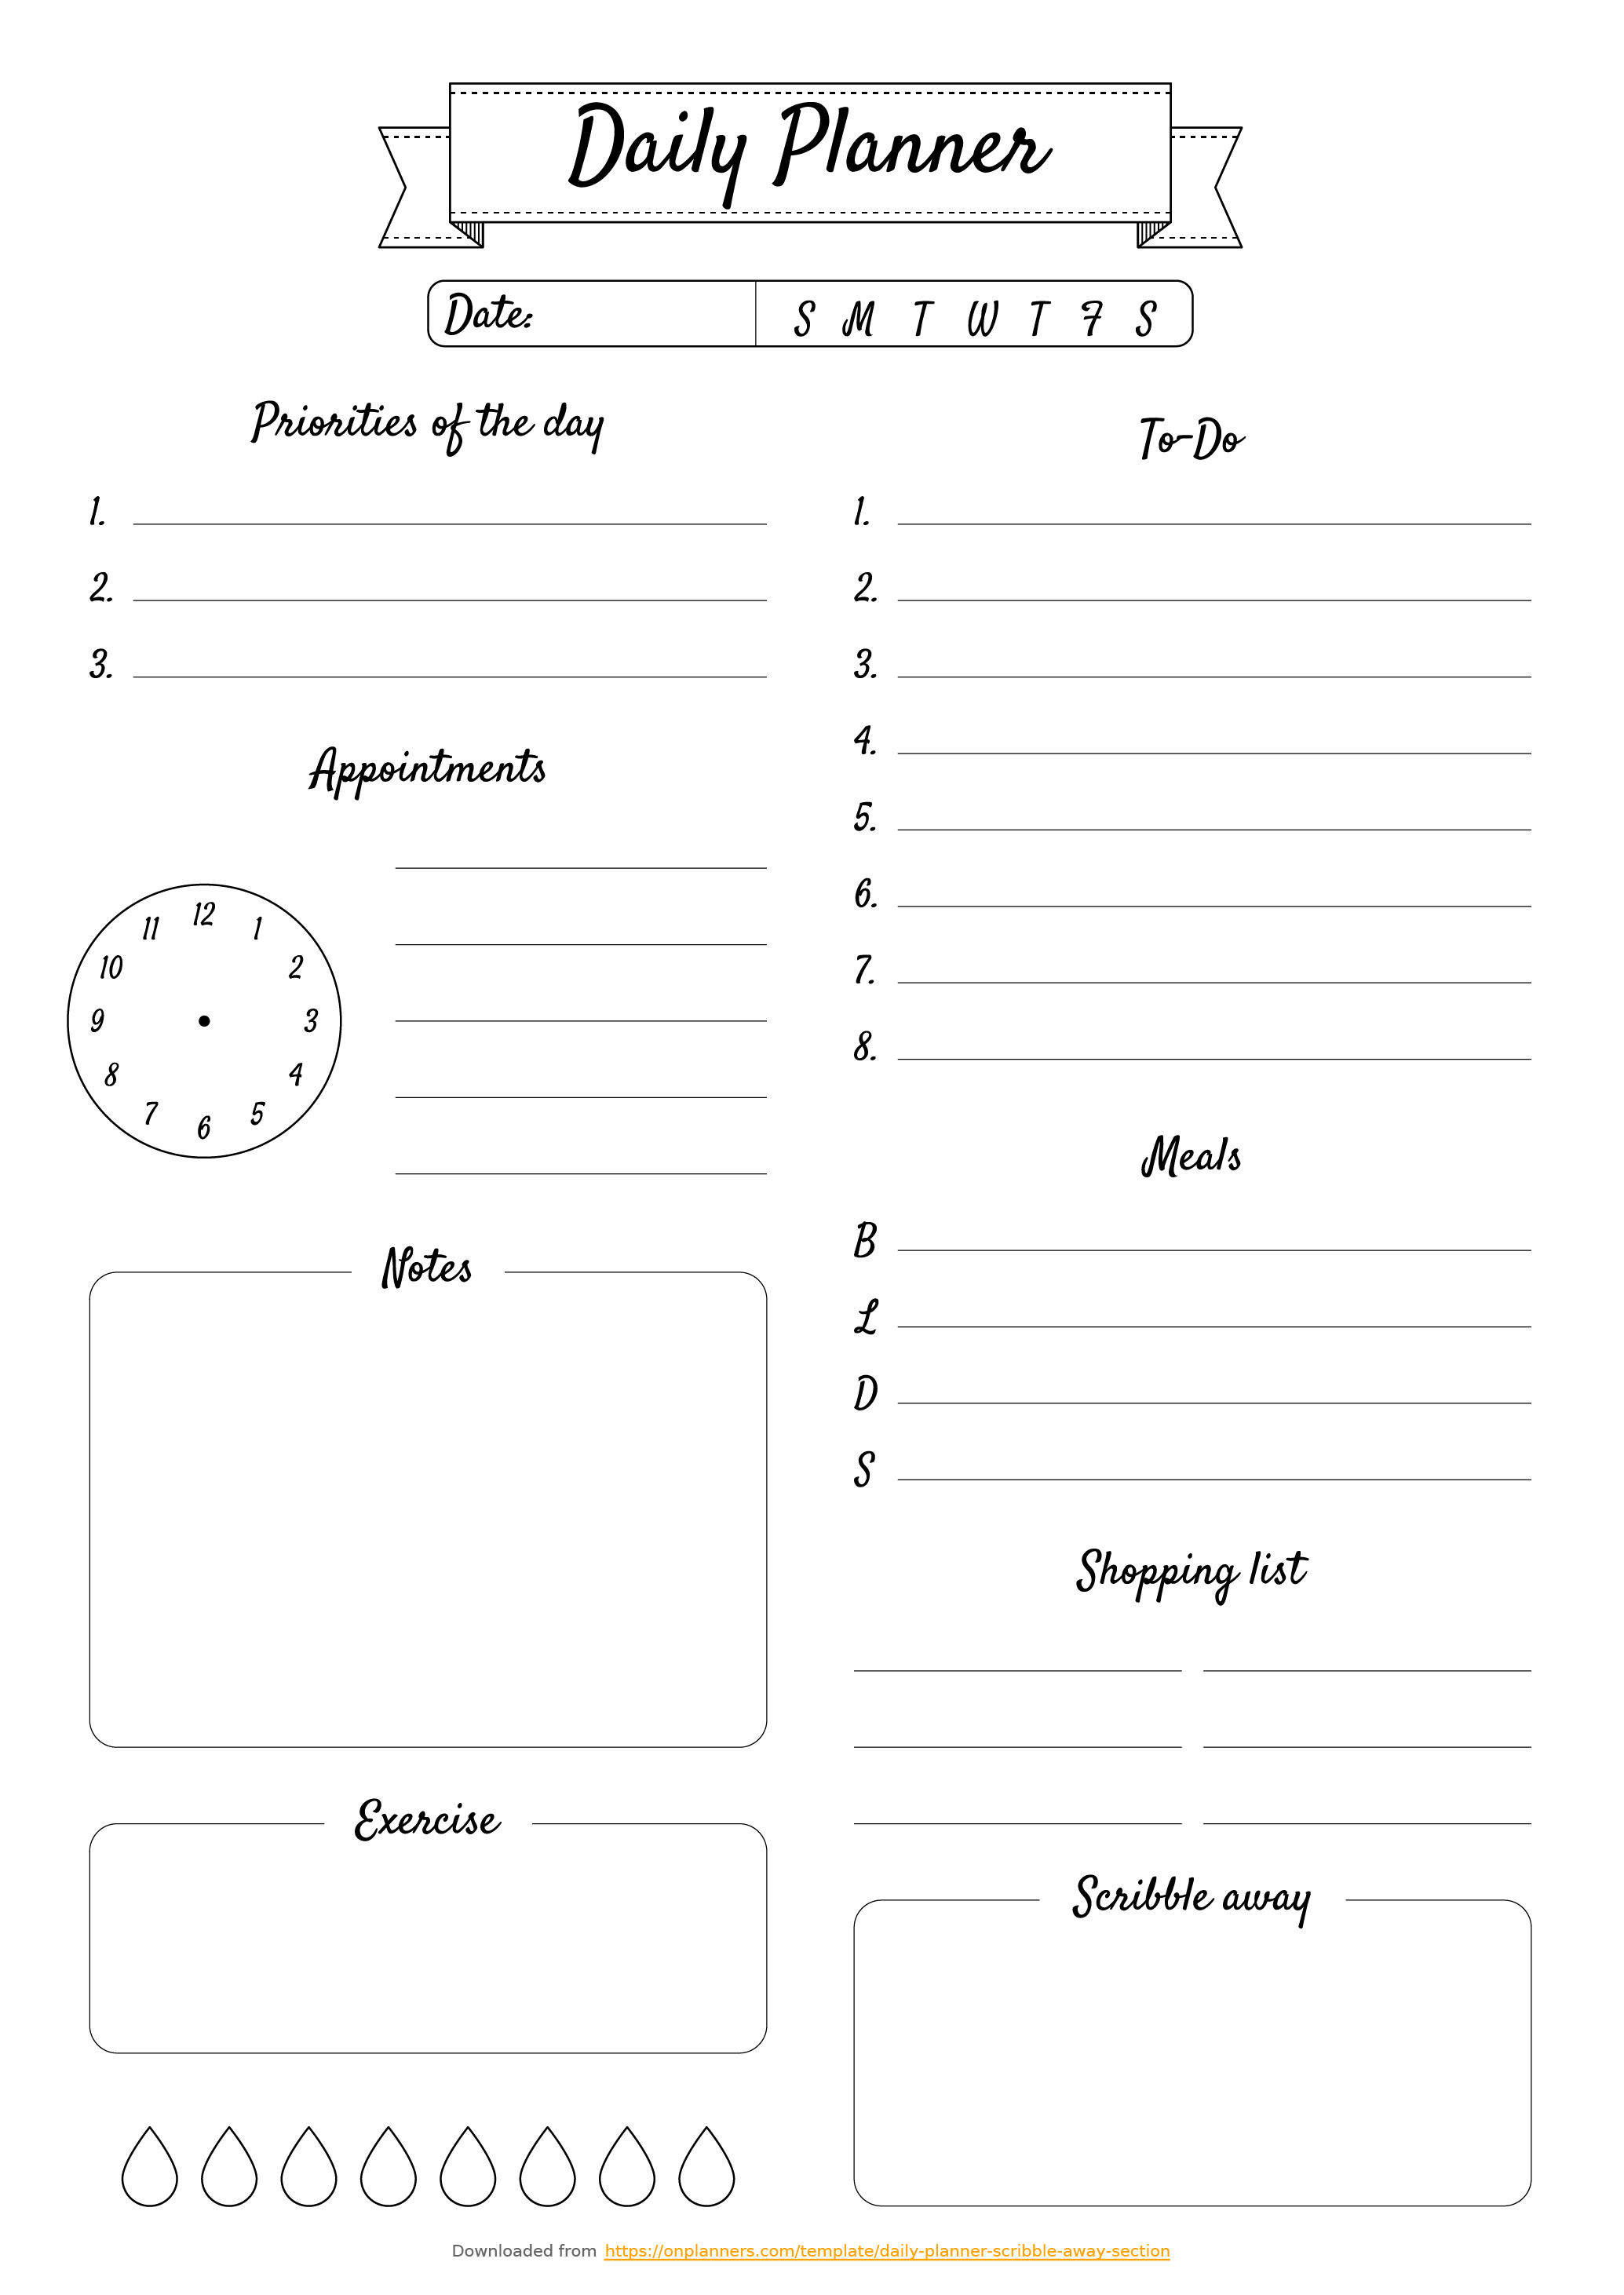 Free Printable Daily Planner With Scribble Away Section Pdf Download with regard to Daily Planner Template Printable Free